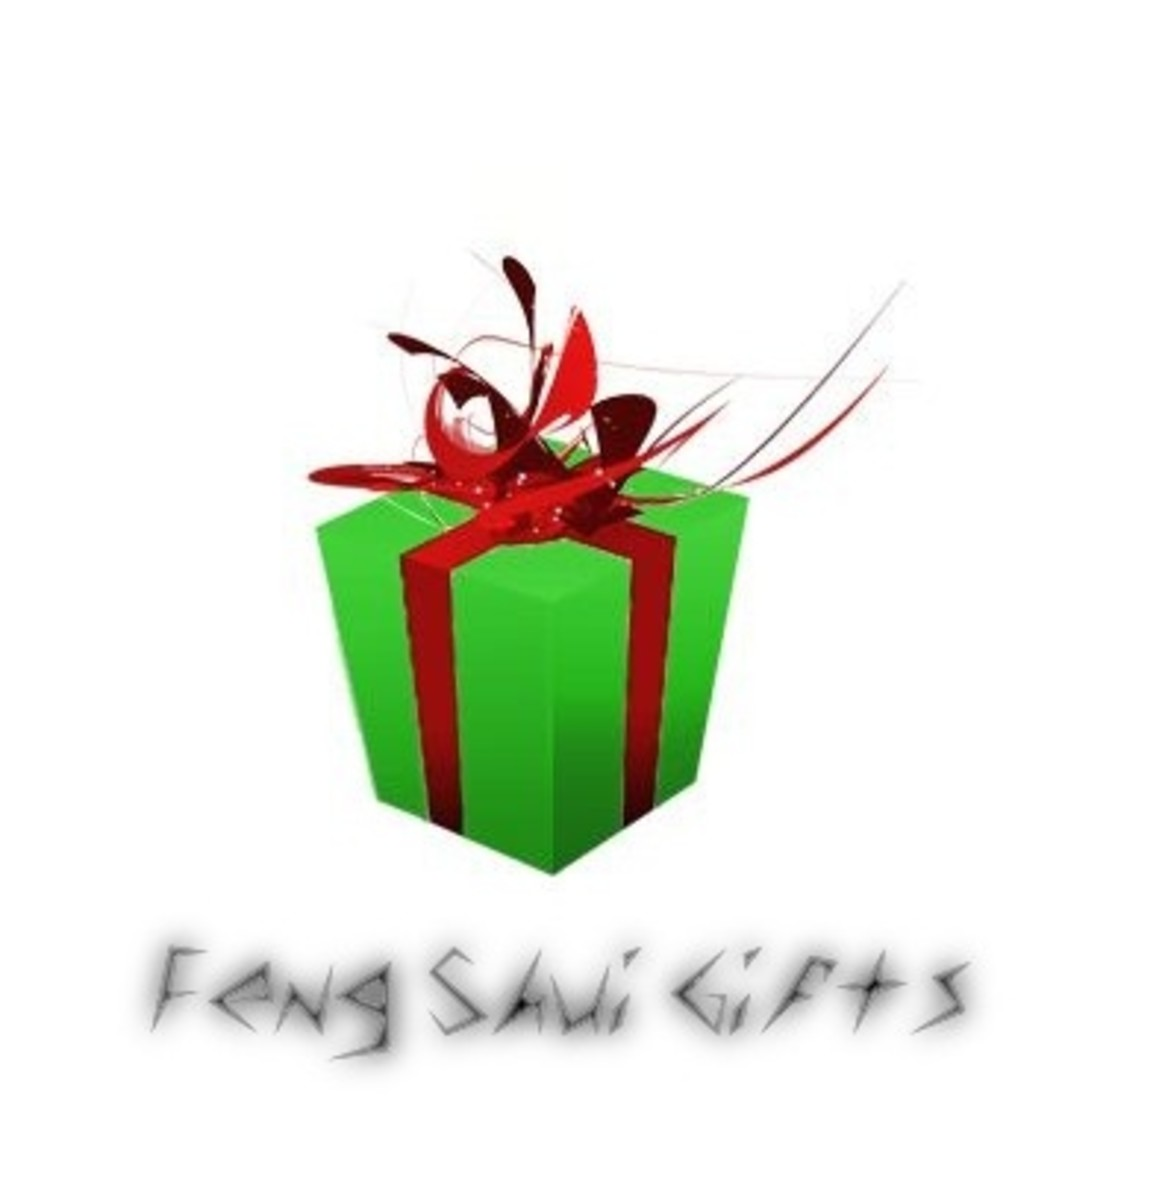 Inauspicious Gifts : Gifts that should be avoided